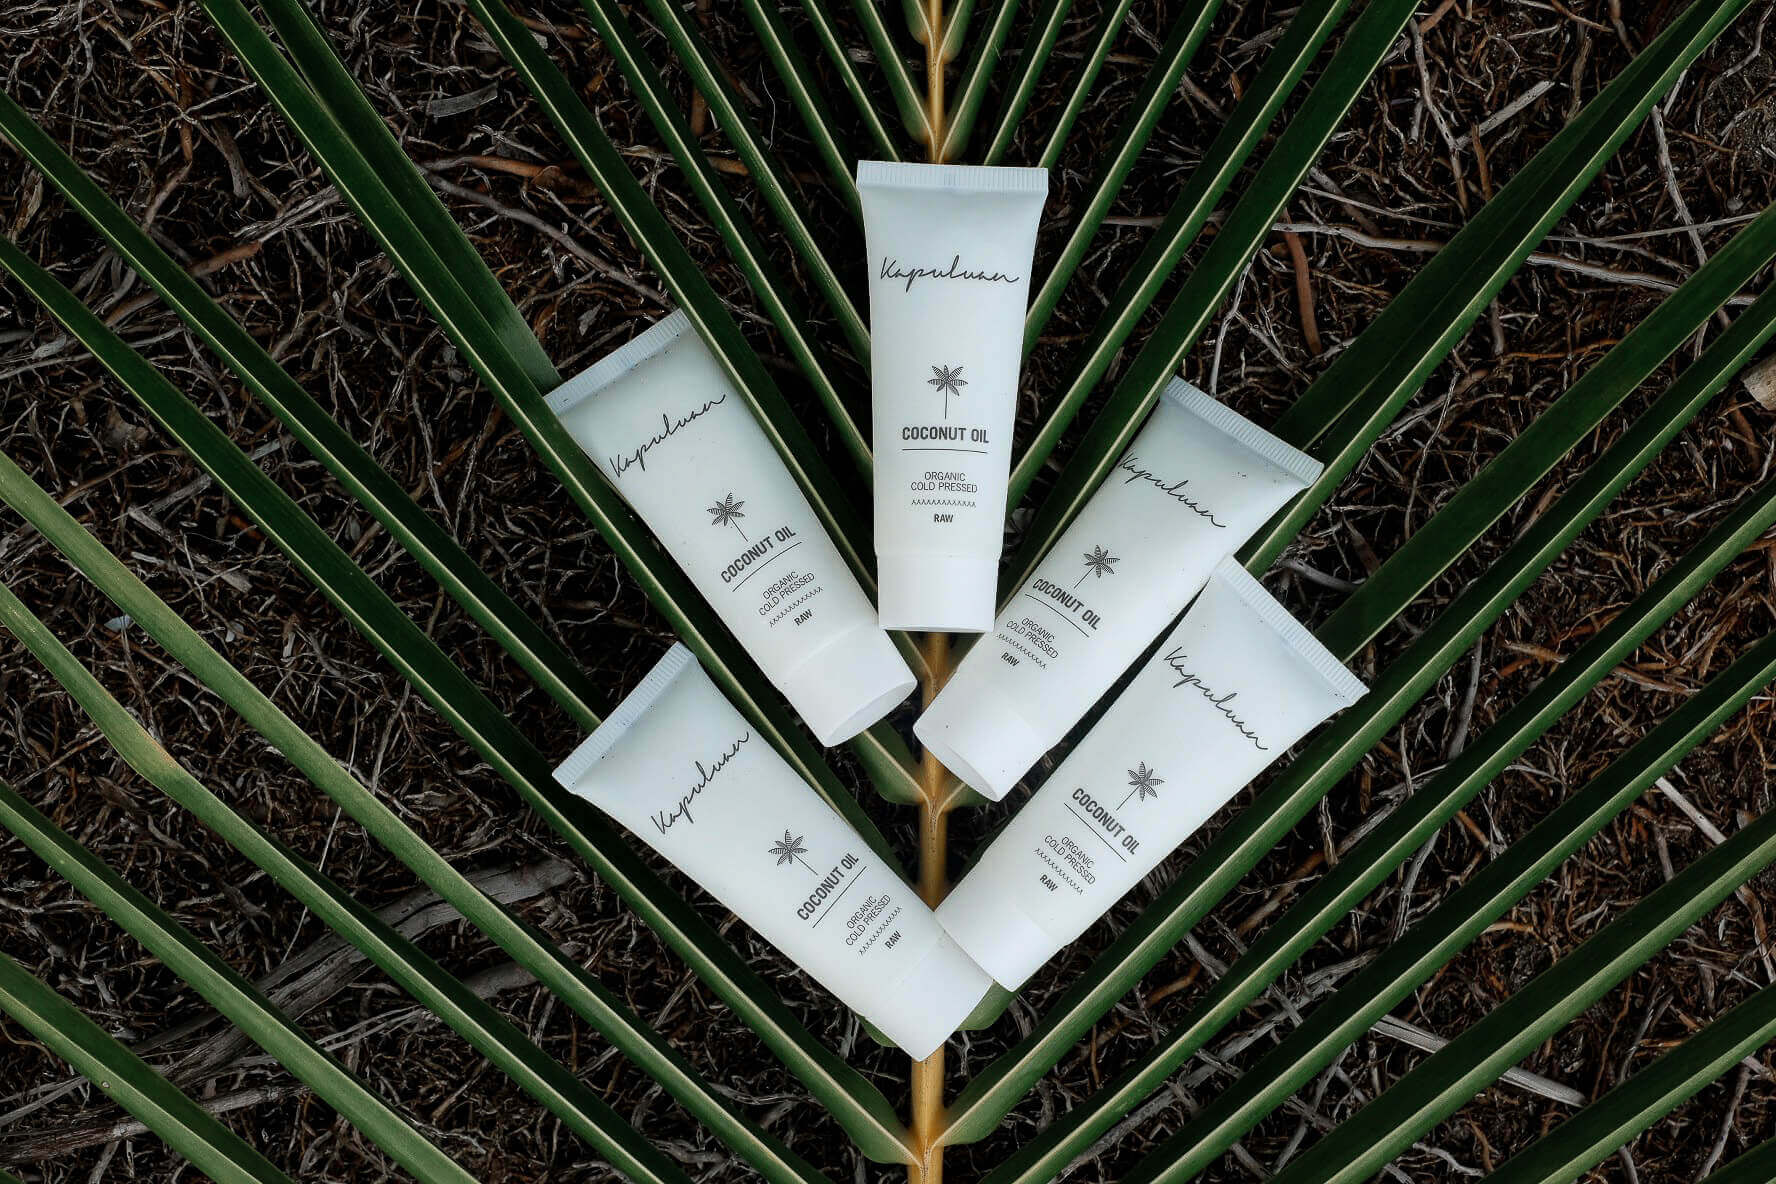 Kapuluan cold pressed raw coconut oil is a beauty essential you need